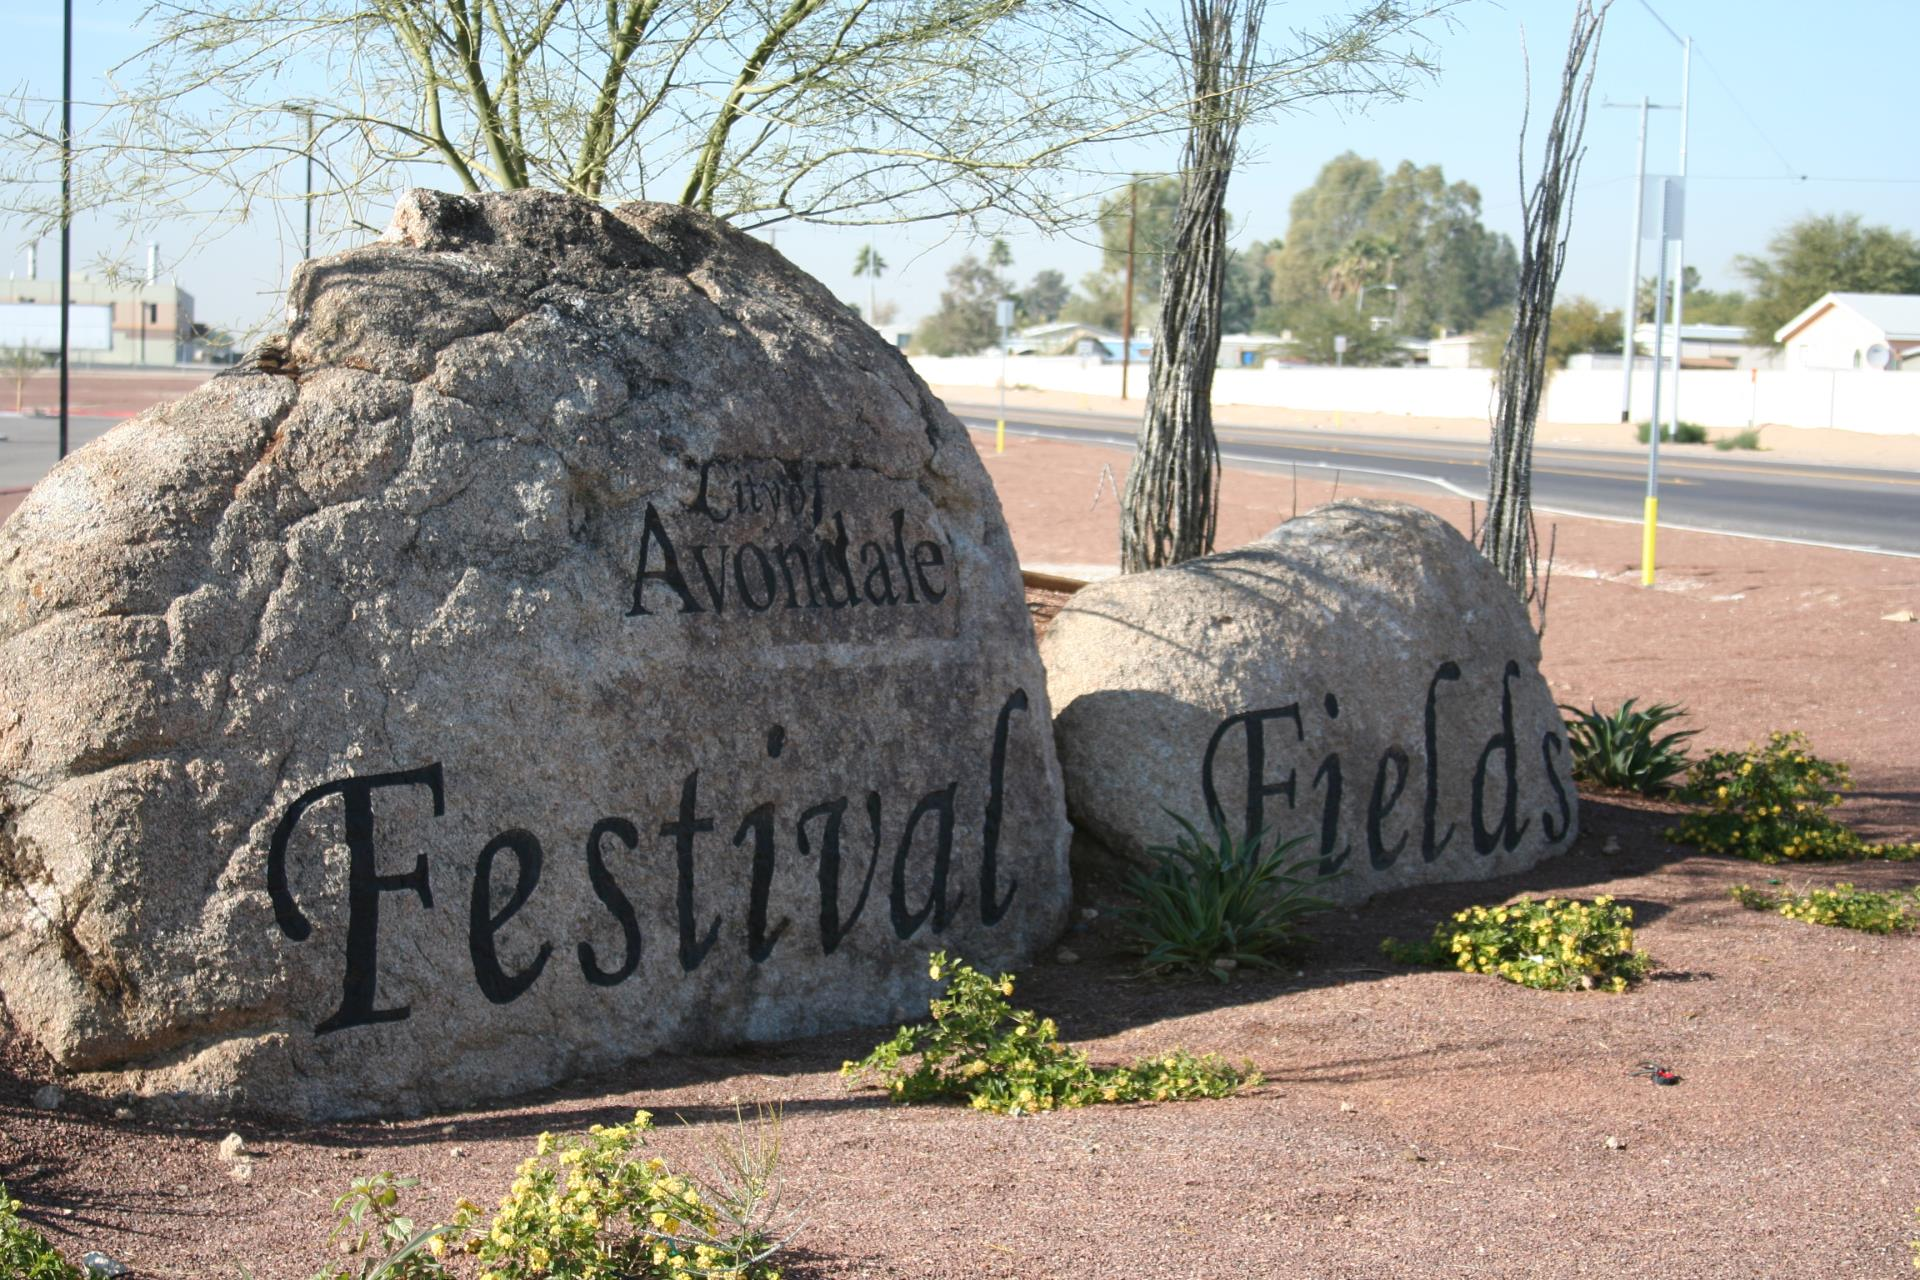 Avondale to hold public design input meeting for Festival Fields skate park and pump track